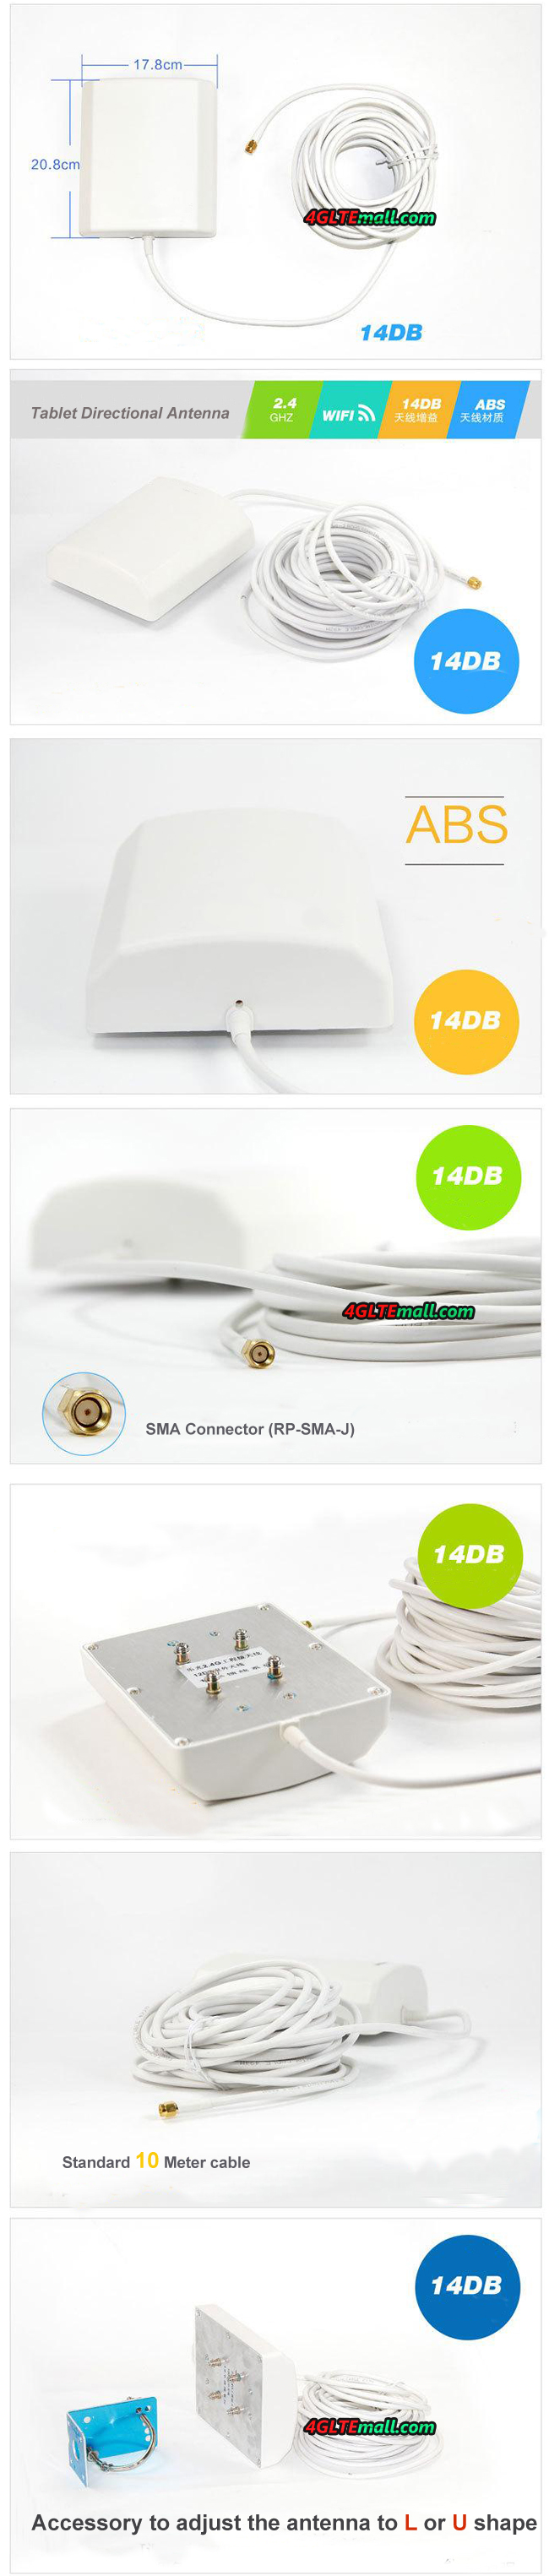 2.4G 14DB Directional WiFi Booster Outdoor Antenna